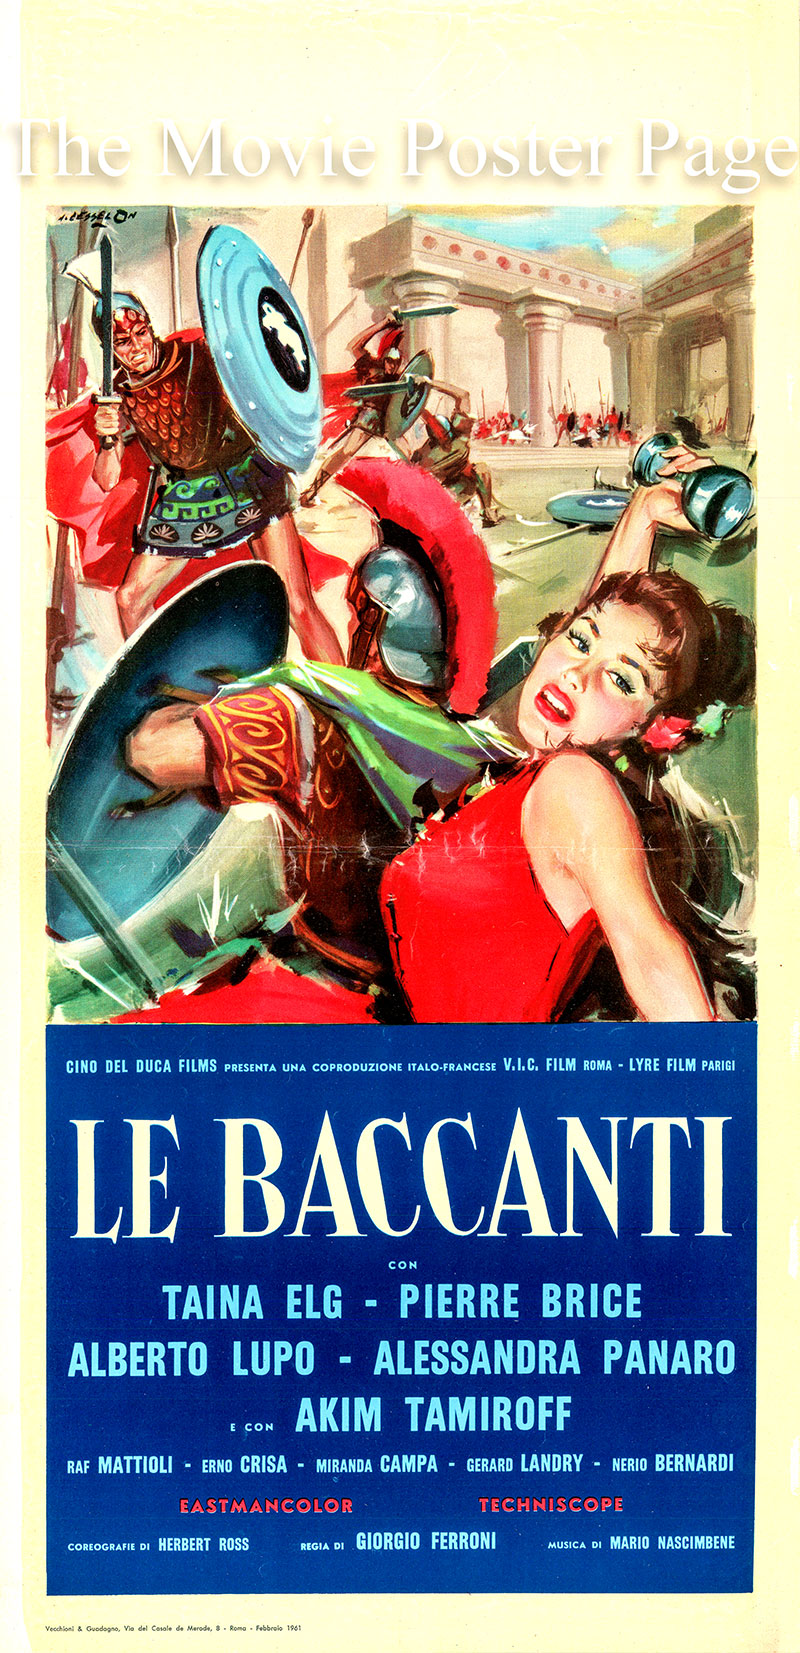 Pictured is an Italian locandina poster for the 1961 Giorgio Ferroni film Bondage Gladiator Sexy starring Taina Elg as Dirce.